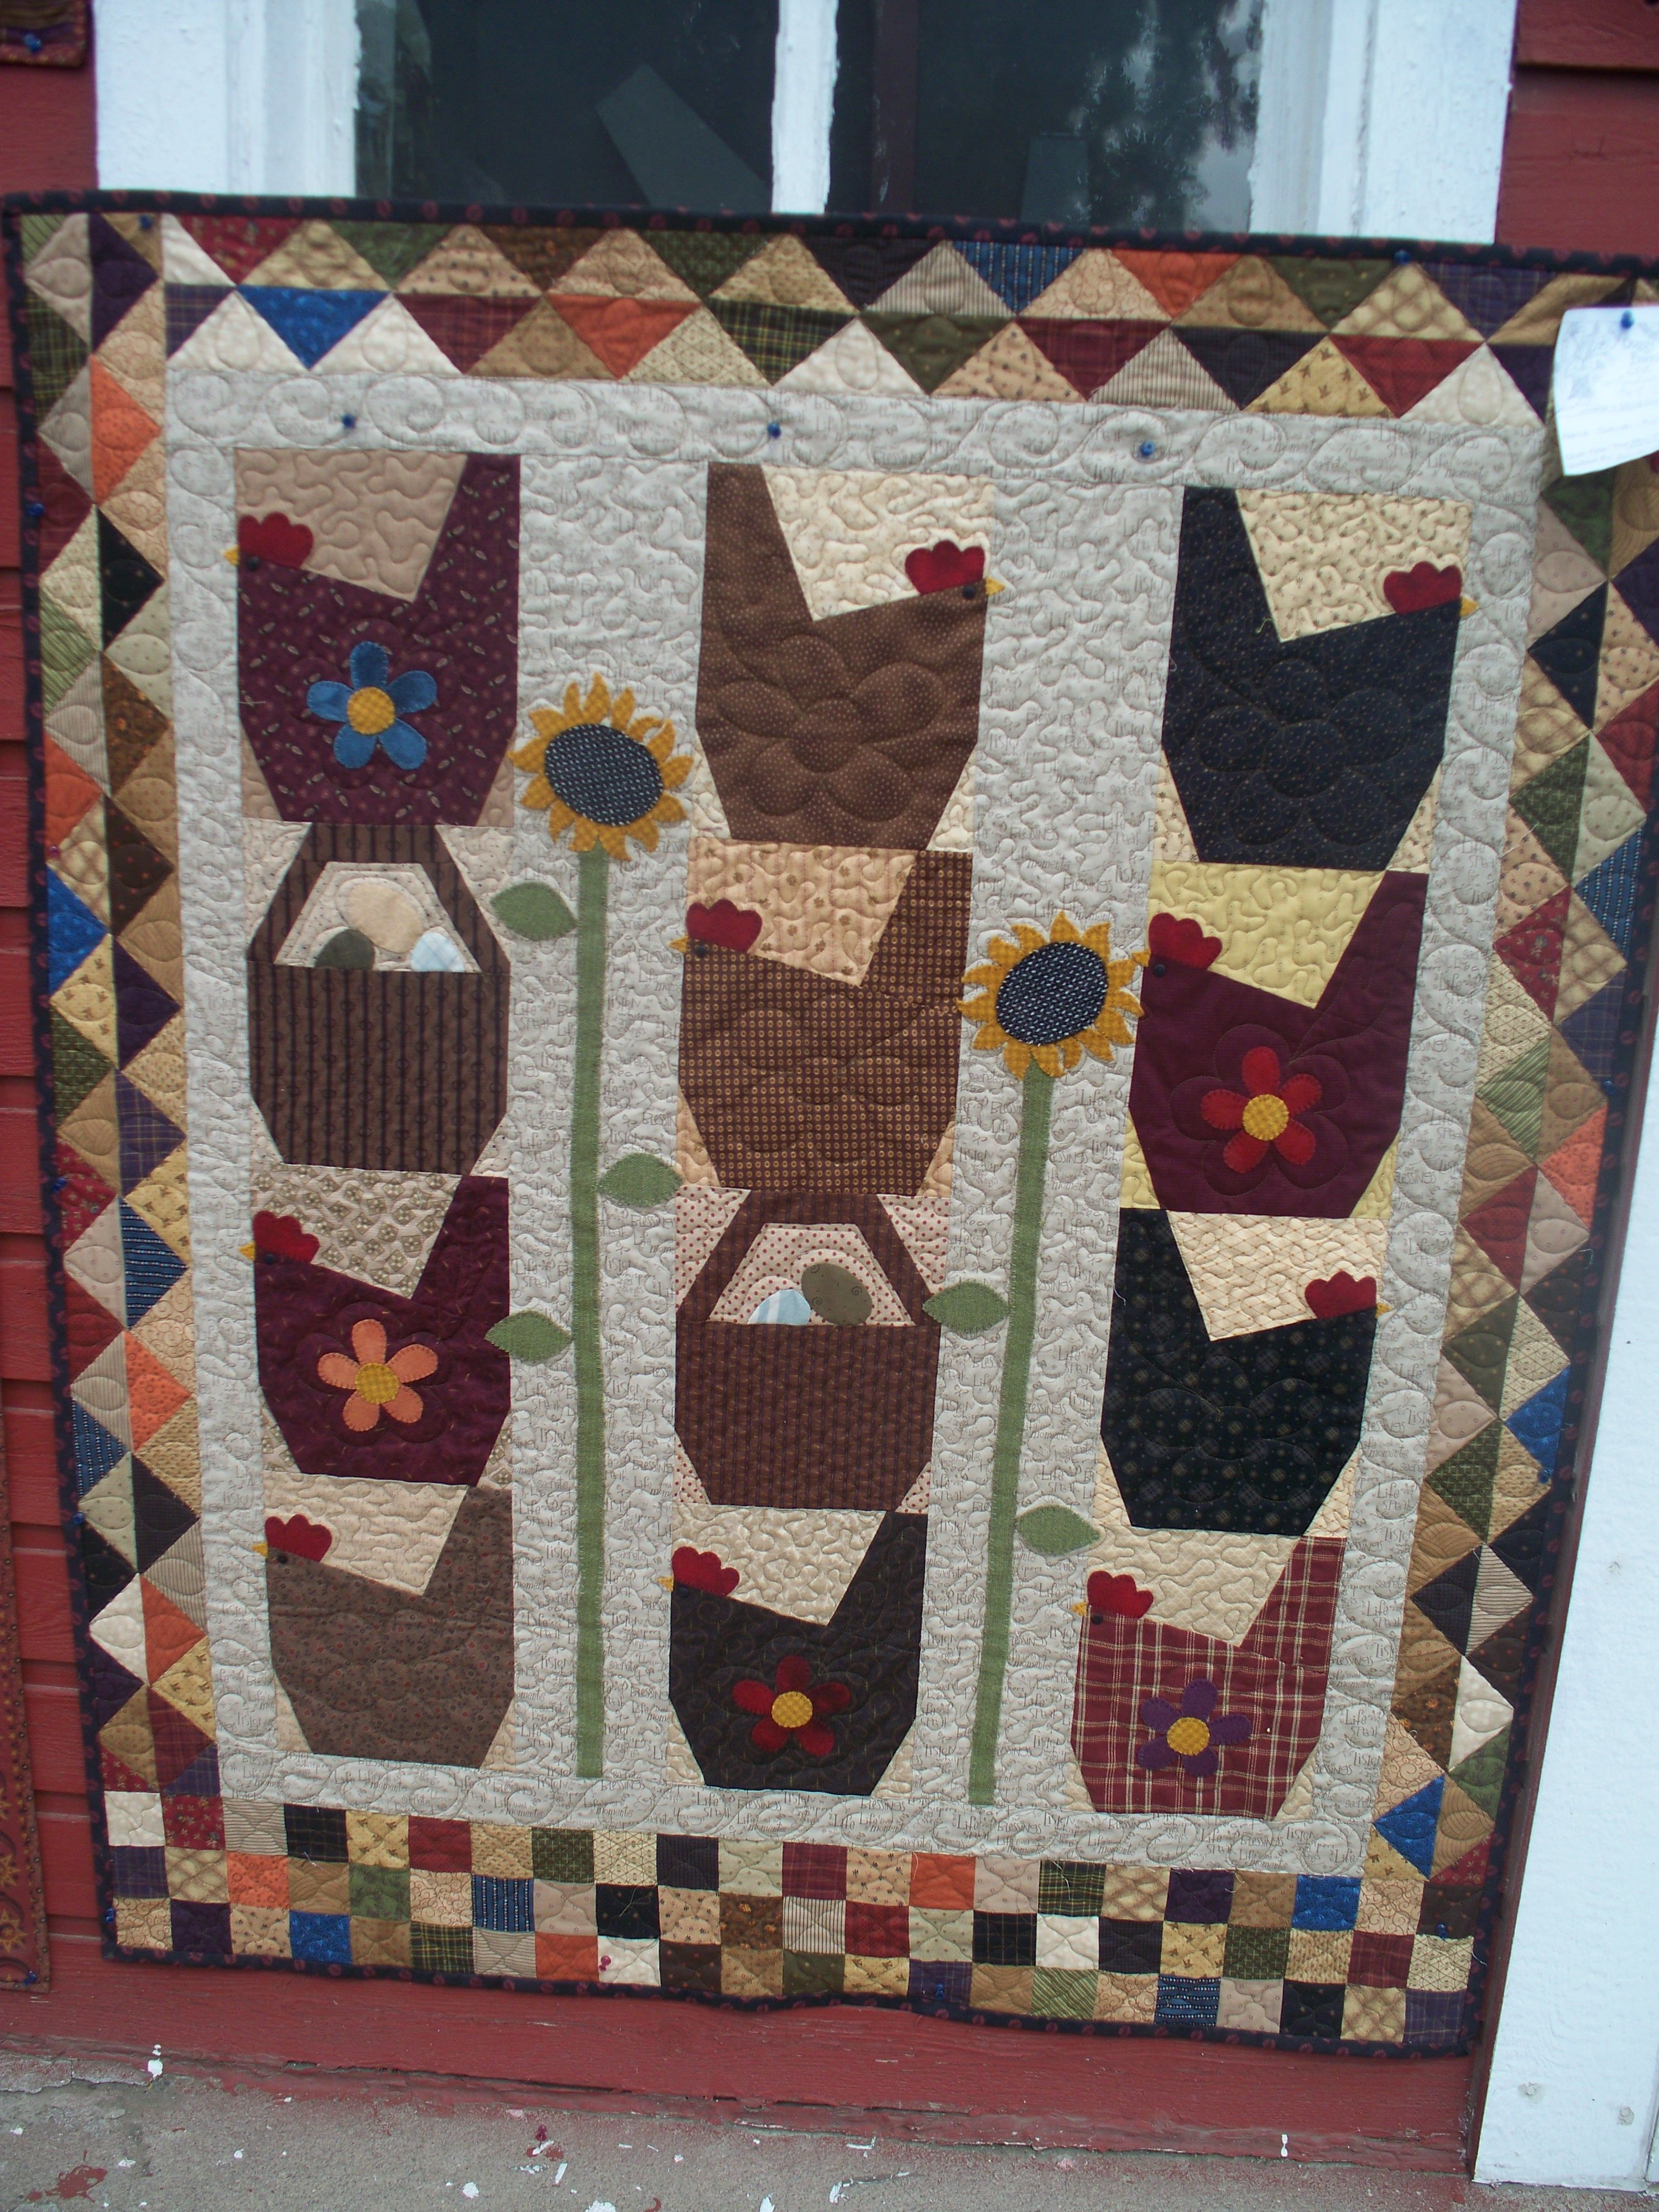 The Hen House by Els Feteris for Bobbins photographed at the 2010 ... : buggy barn quilt show - Adamdwight.com